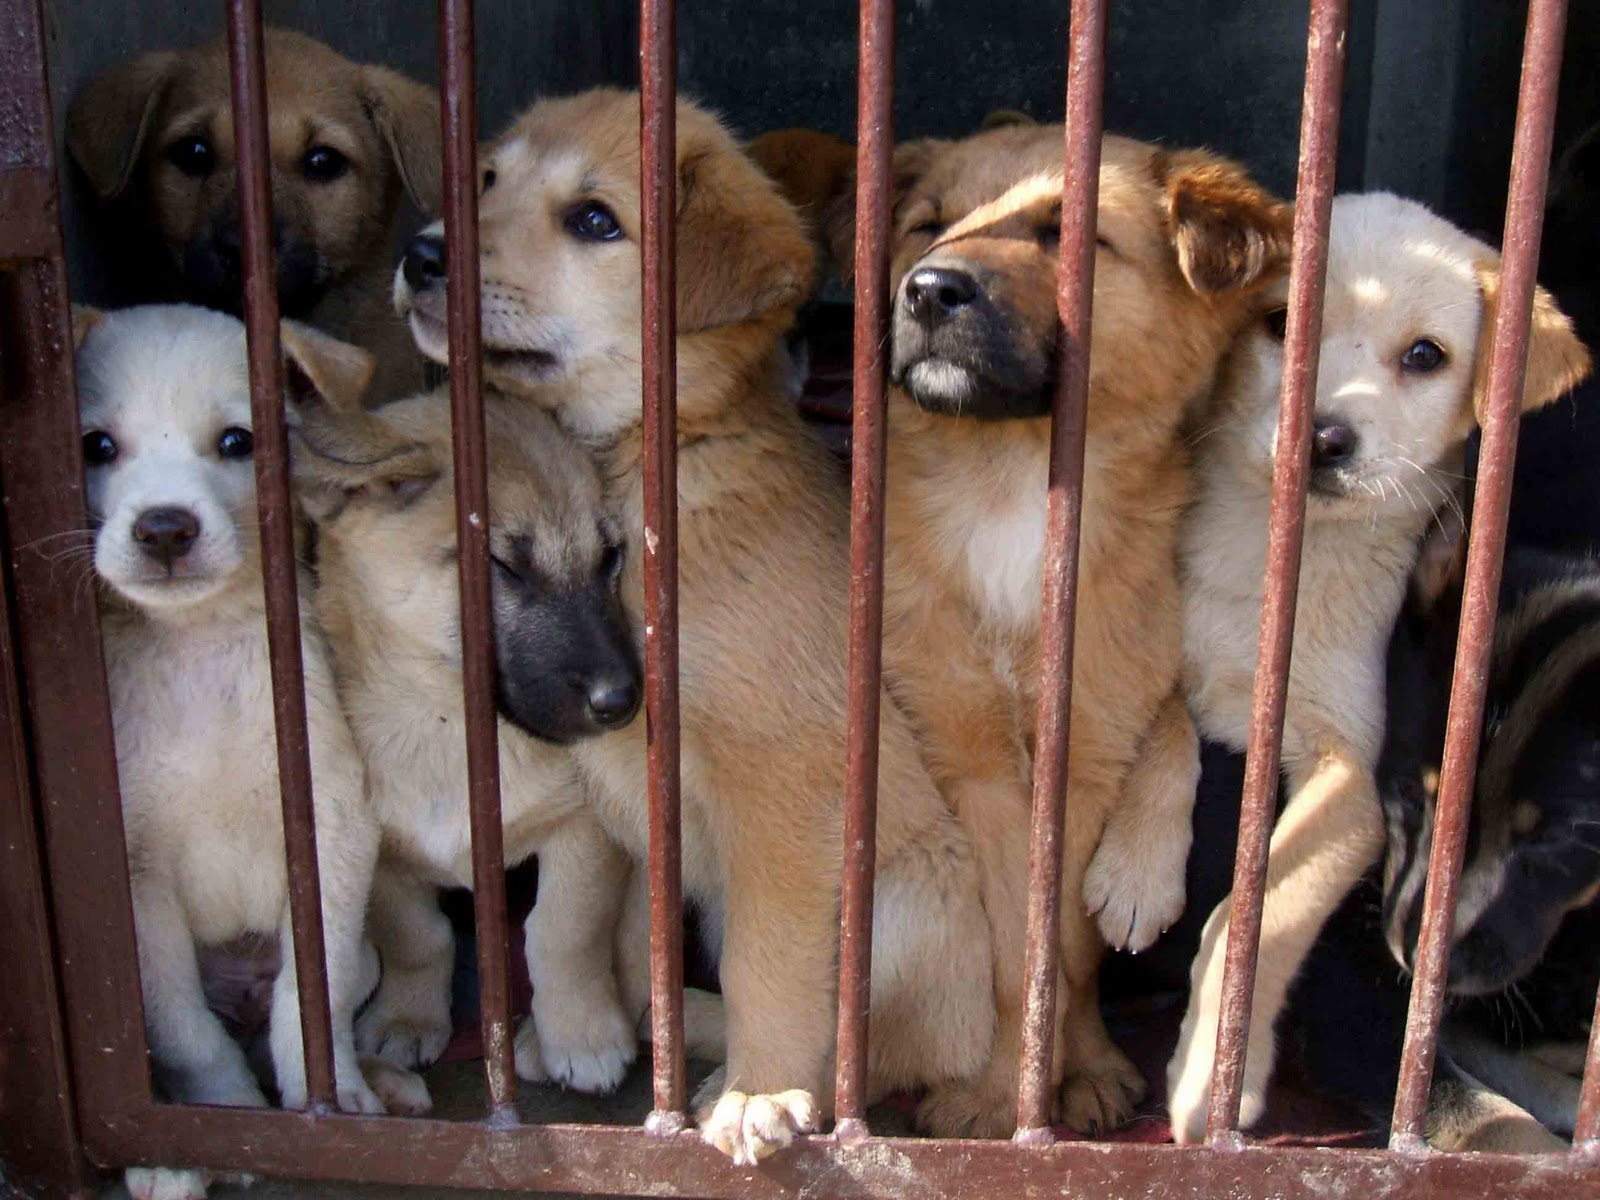 THE ILLEGAL TRADE OF PUPPIES IN EUROPE